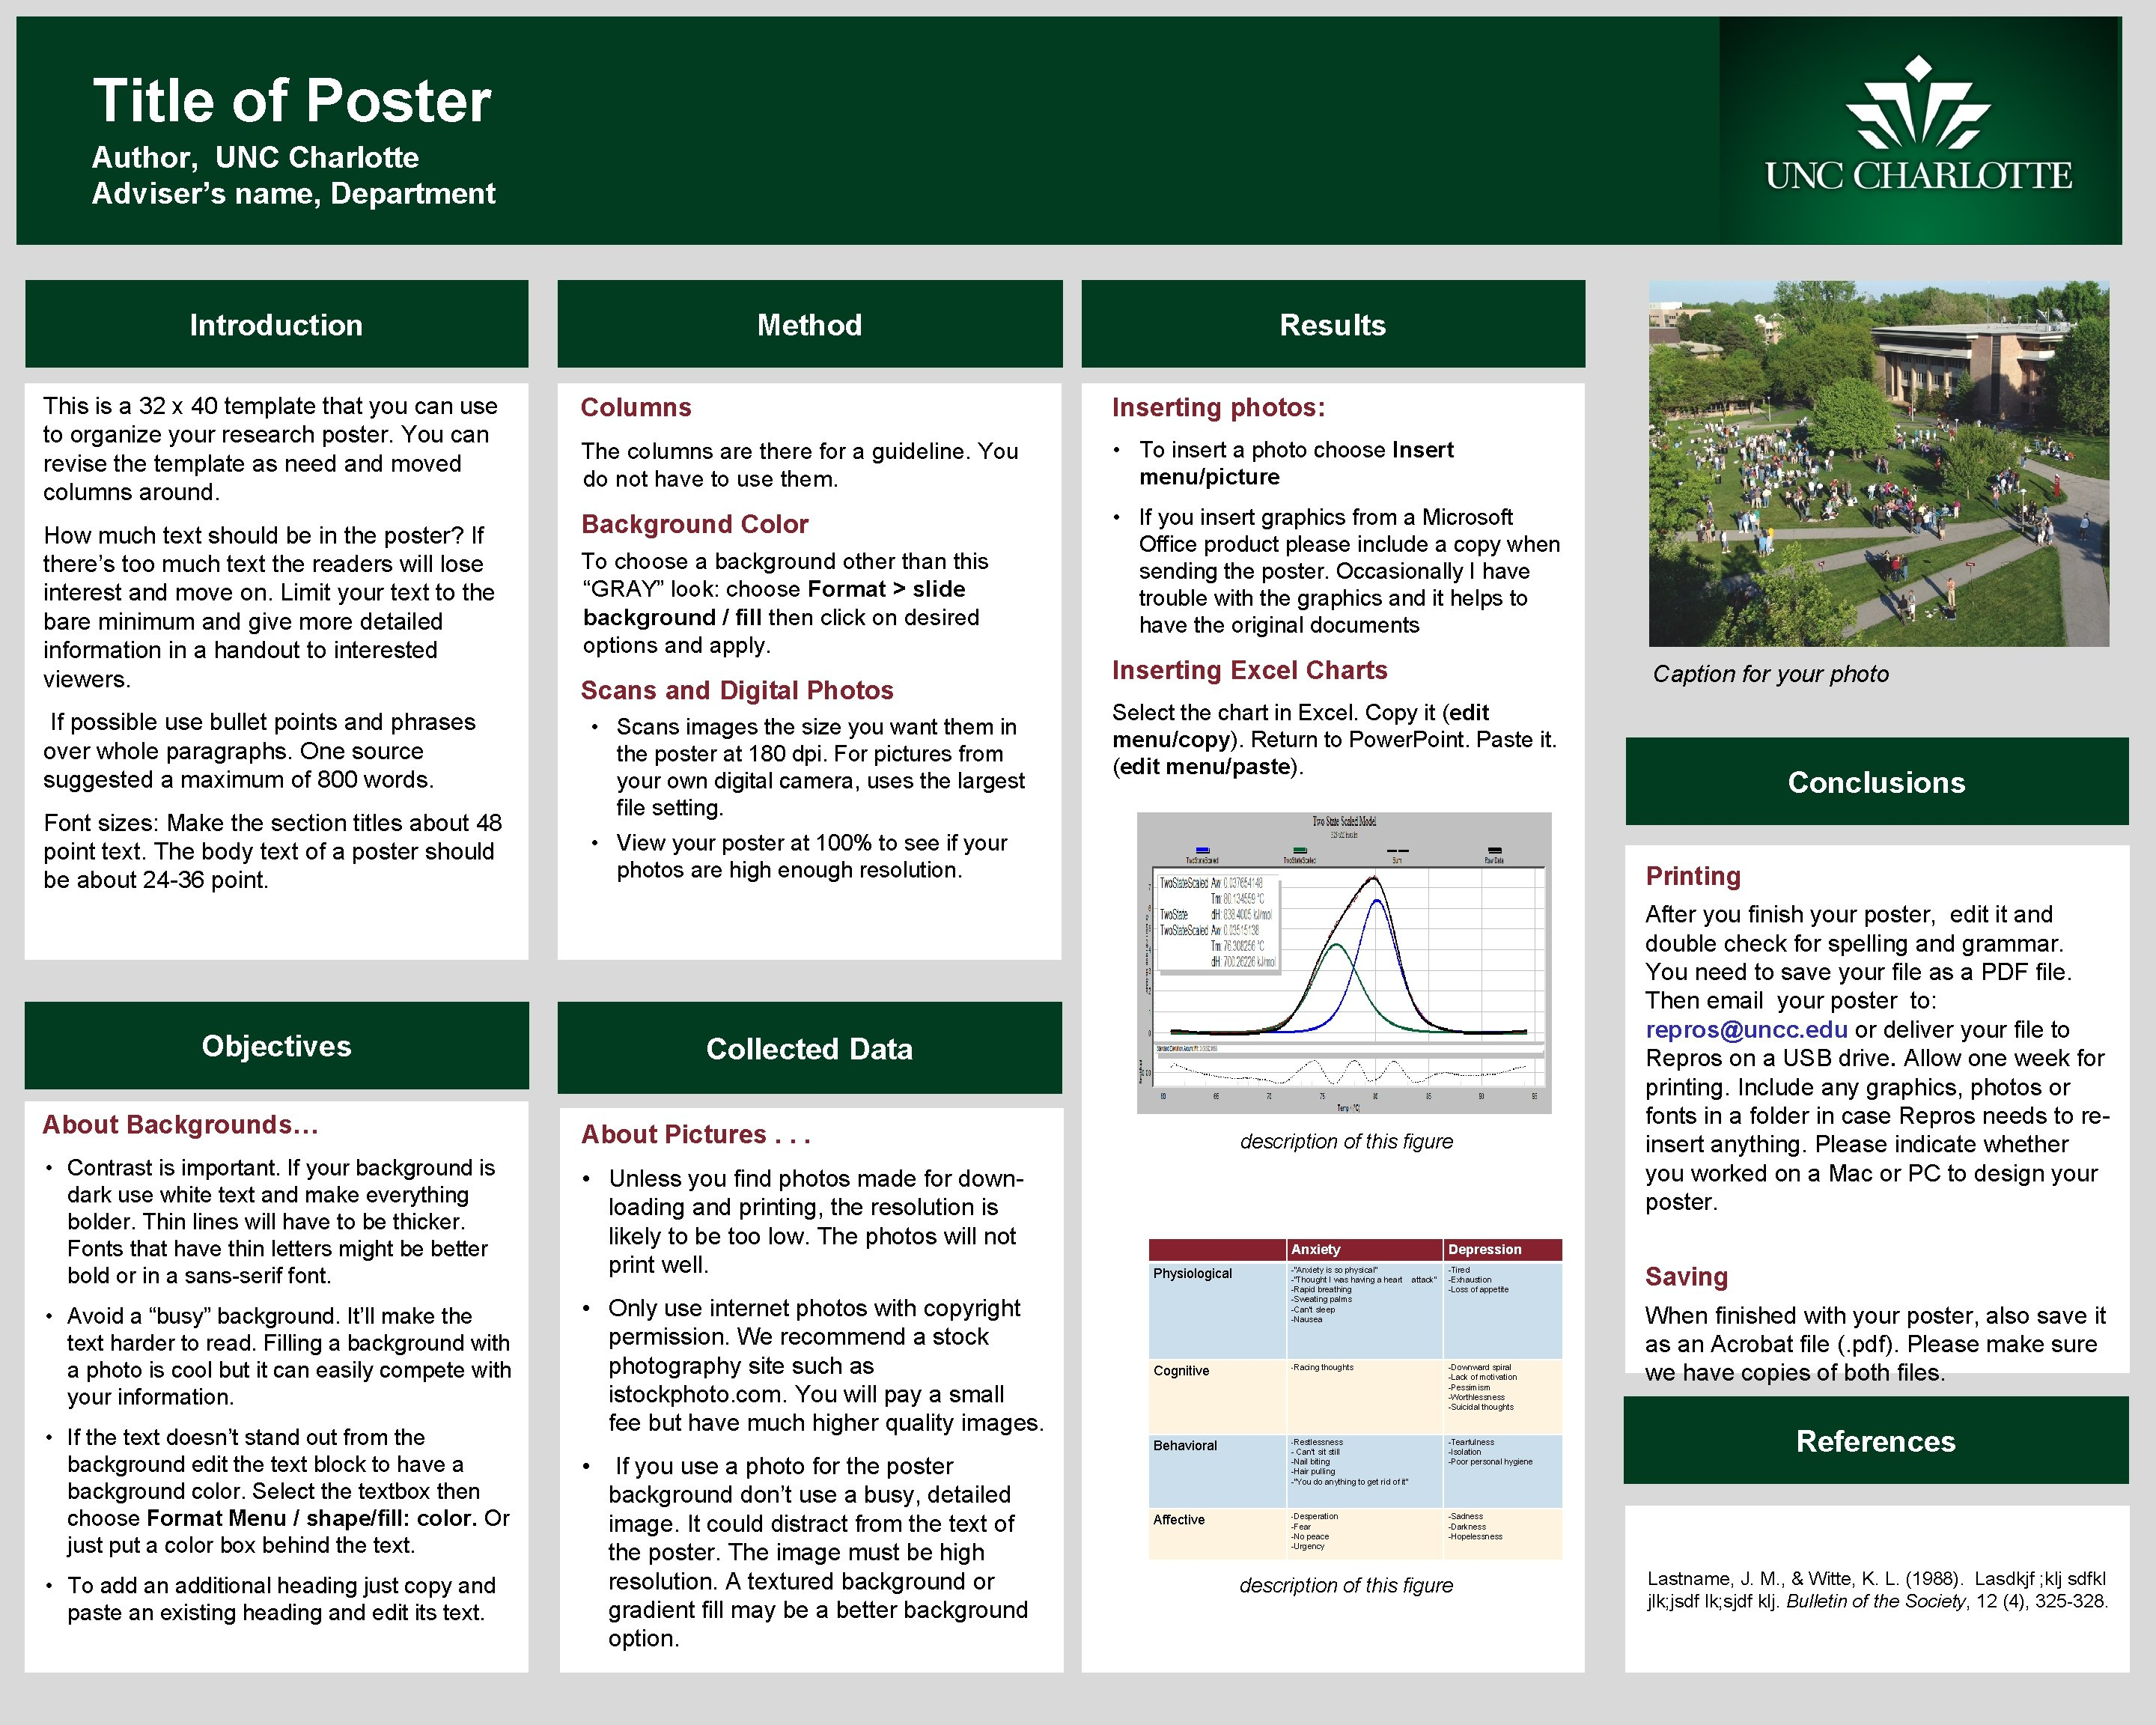 Title of Poster Author, UNC Charlotte Adviser's name, Department Introduction This is a 32